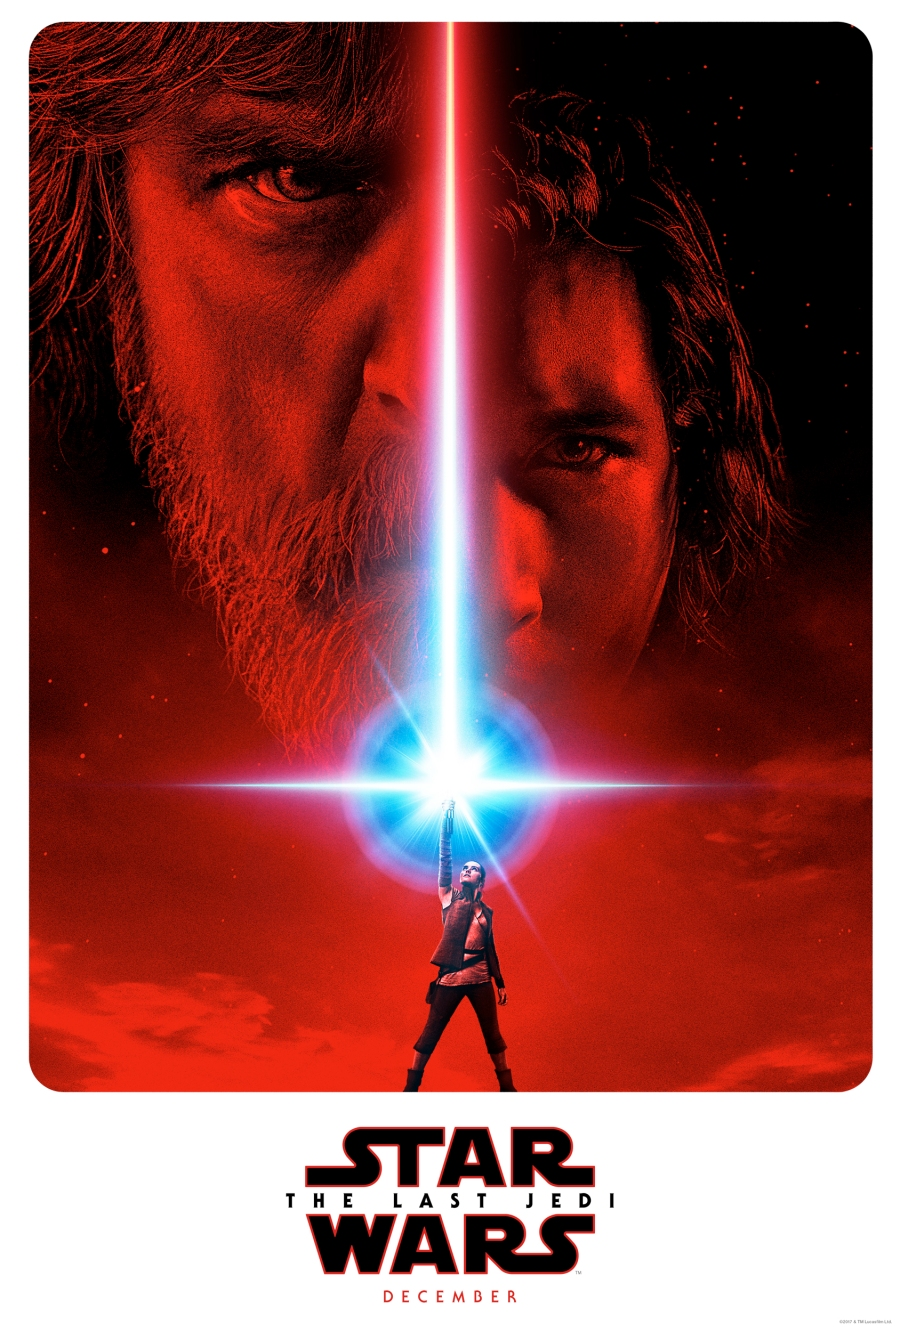 Star Wars Episode VIII The Last Jedi teaser